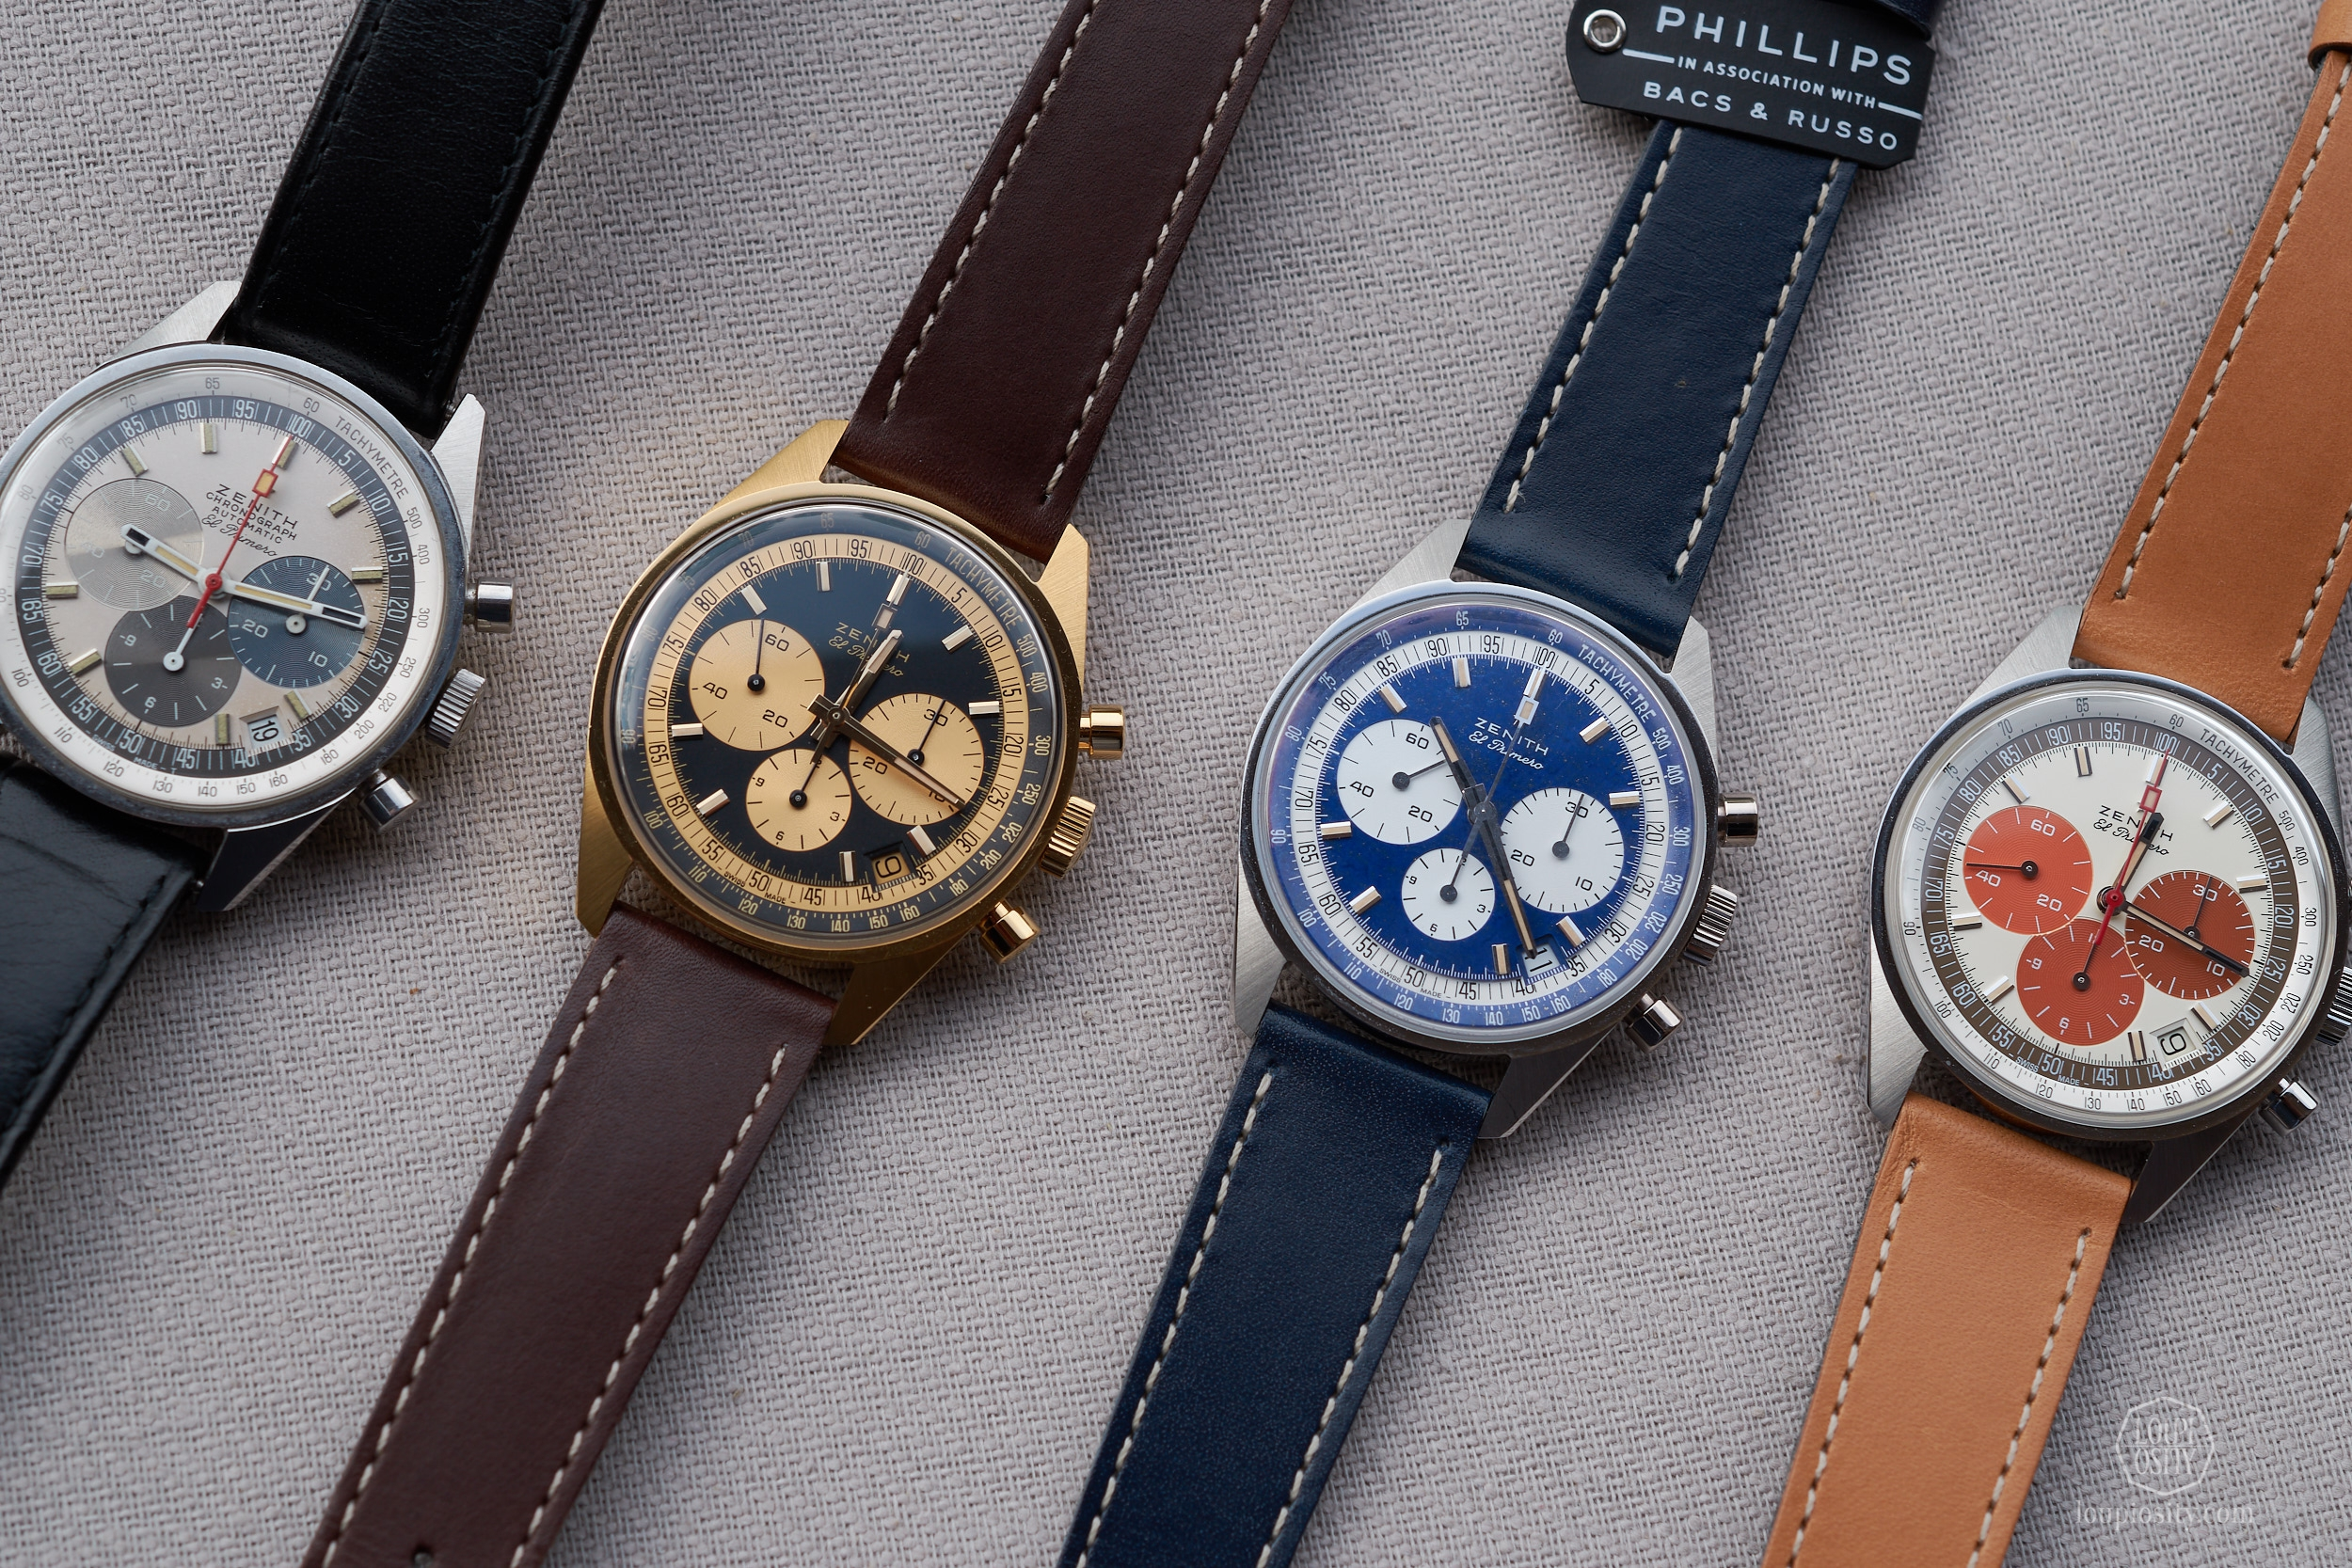 An 1969 original example and the Zenith El Primero 50 anniversary pieces